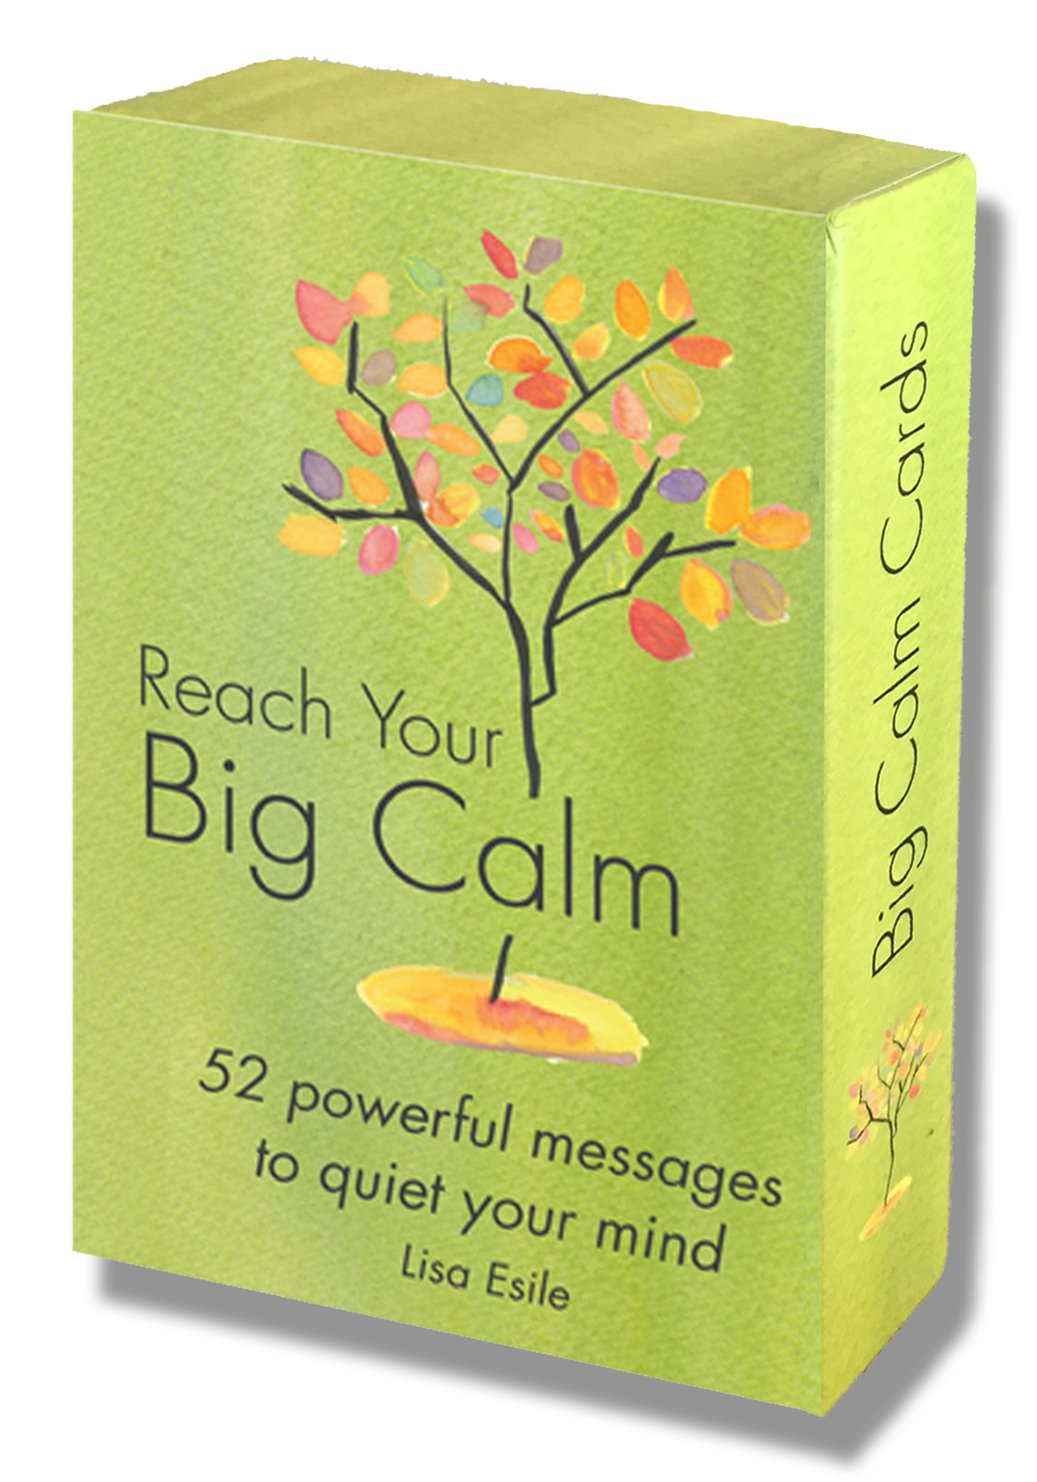 Reach Your Big Calm Deck by Lisa Esile